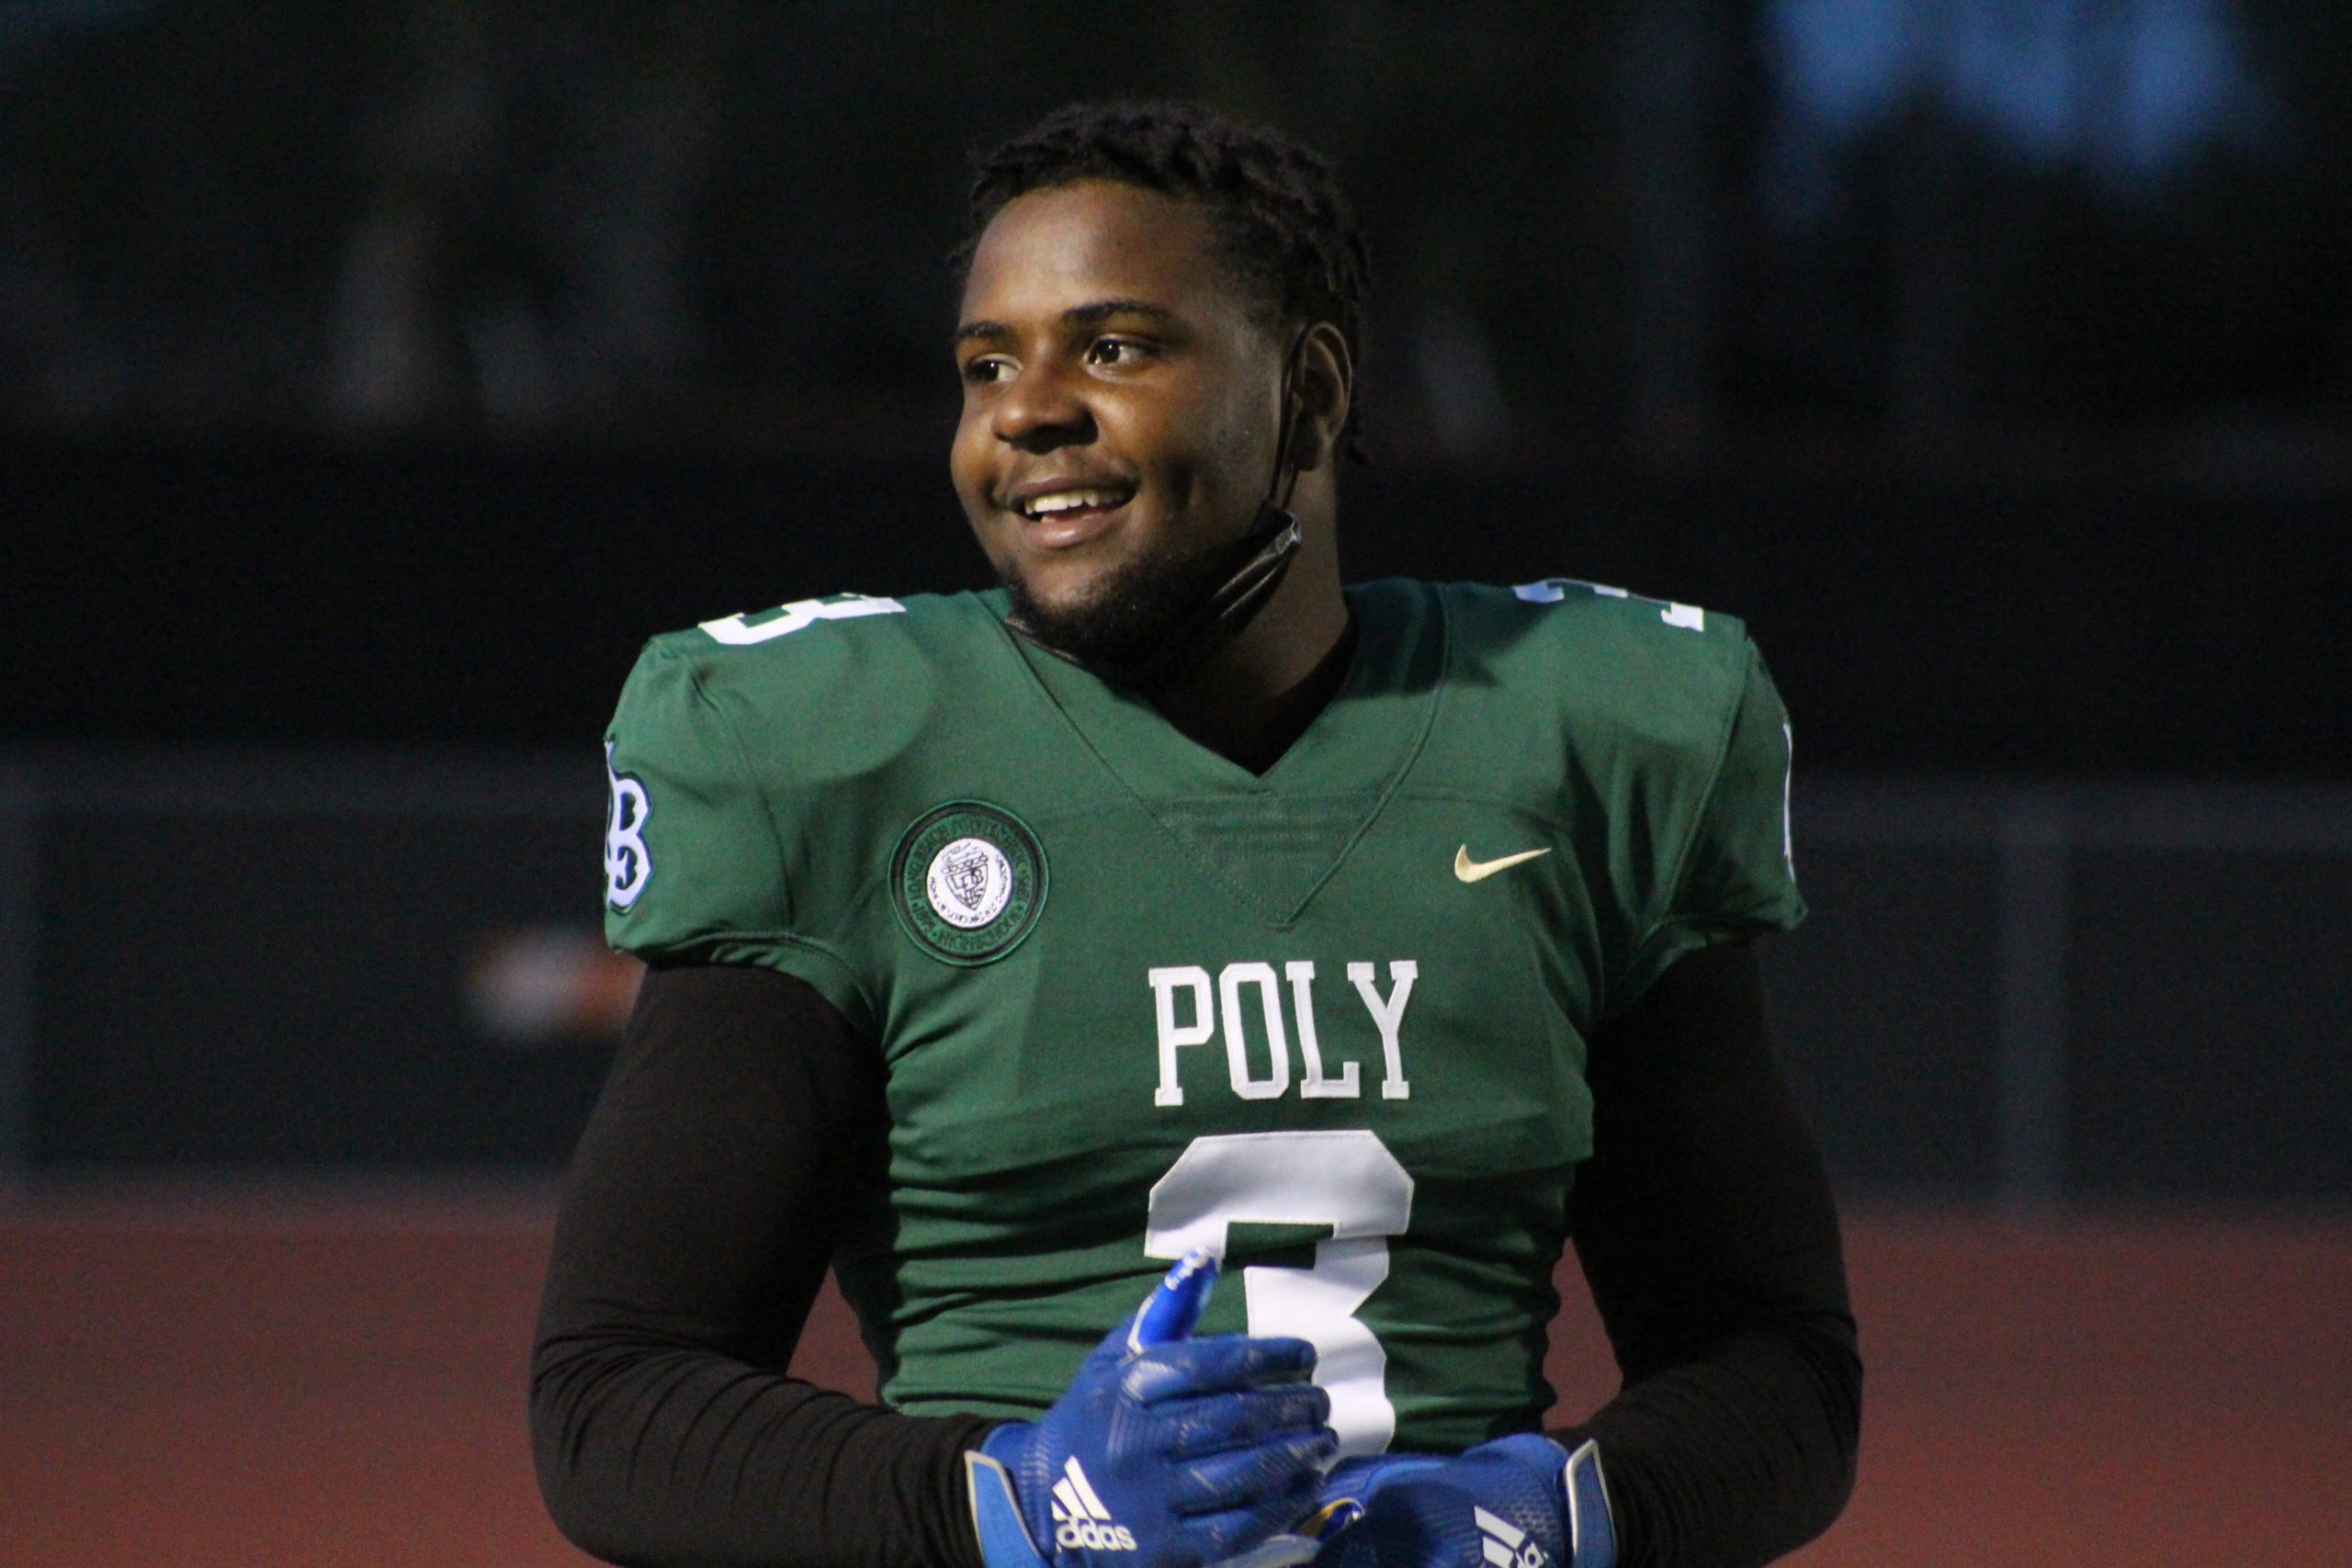 SBLive's California Top 25: Long Beach Poly and Carlsbad debut in statewide football rankings - High School Sports News, Scores, Videos, Rankings - SBLive